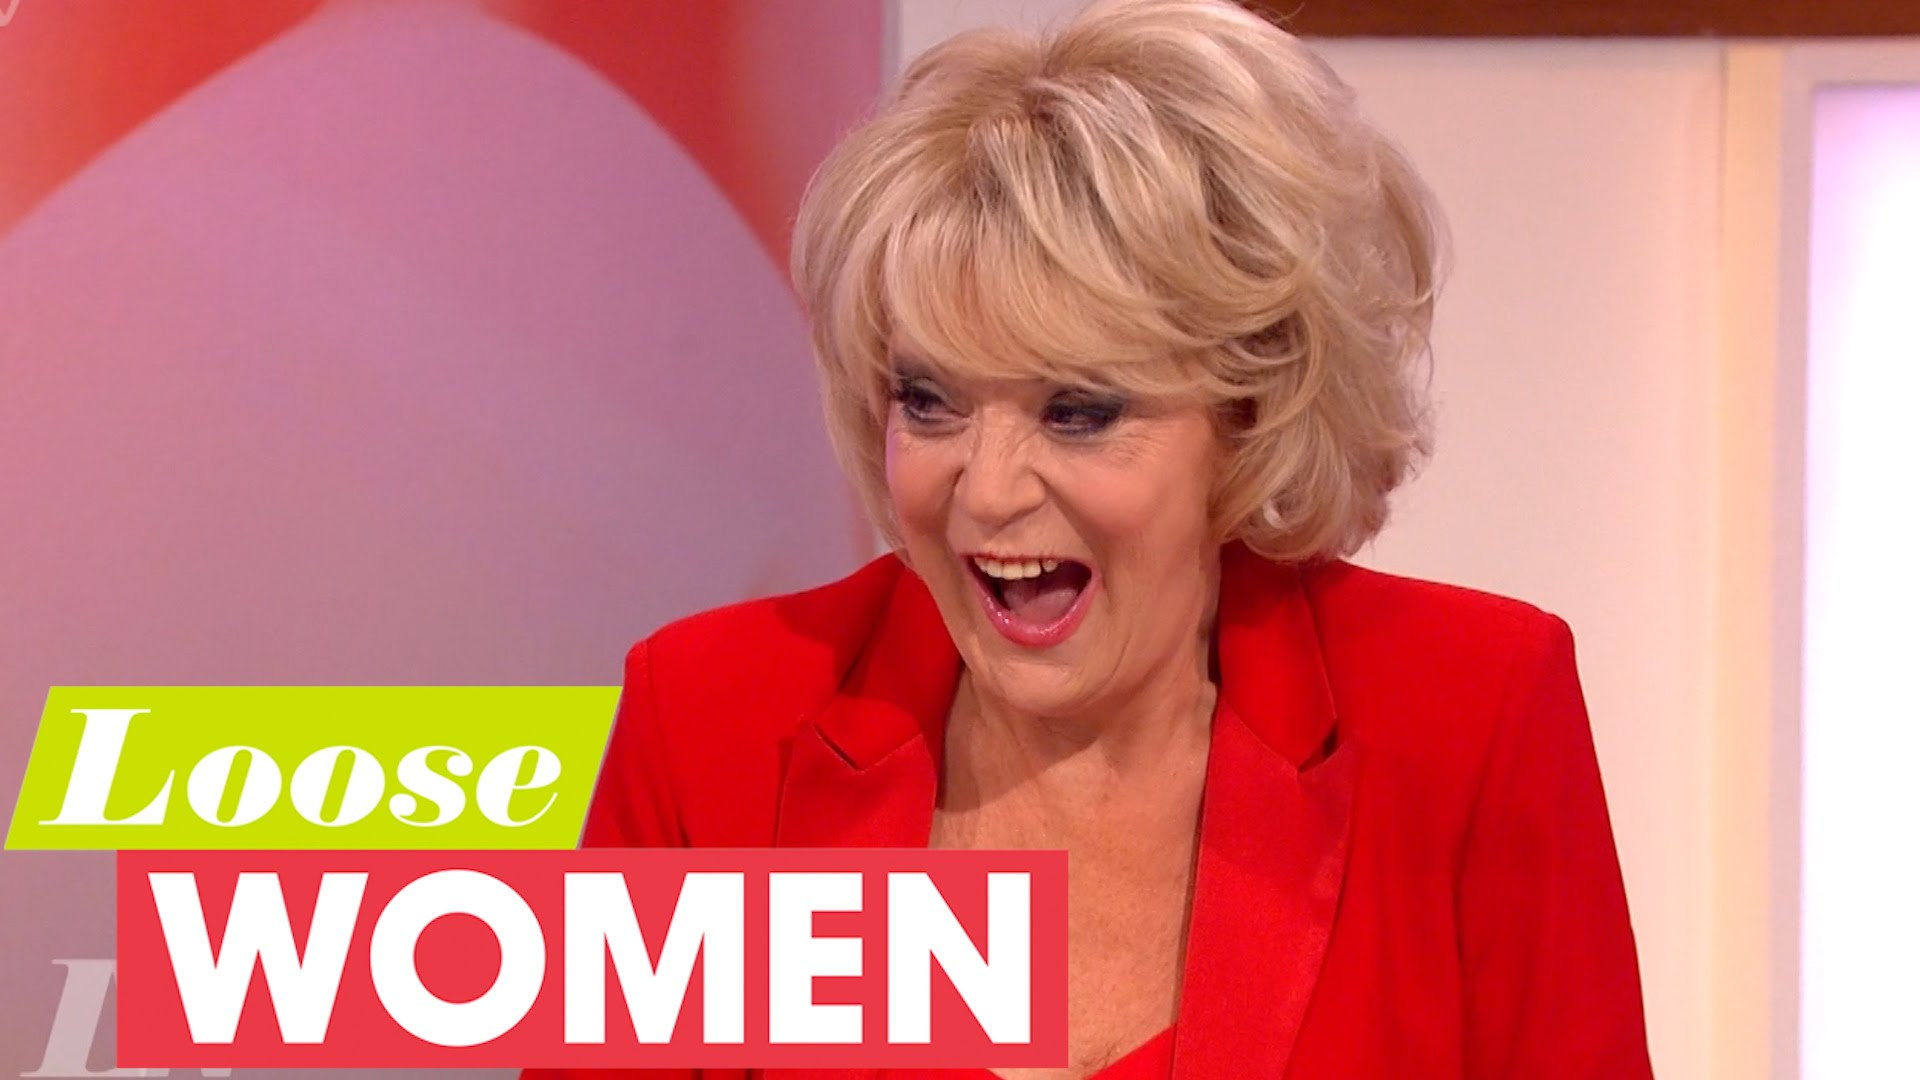 Sherrie Hewson nude (62 foto and video), Pussy, Paparazzi, Twitter, butt 2015